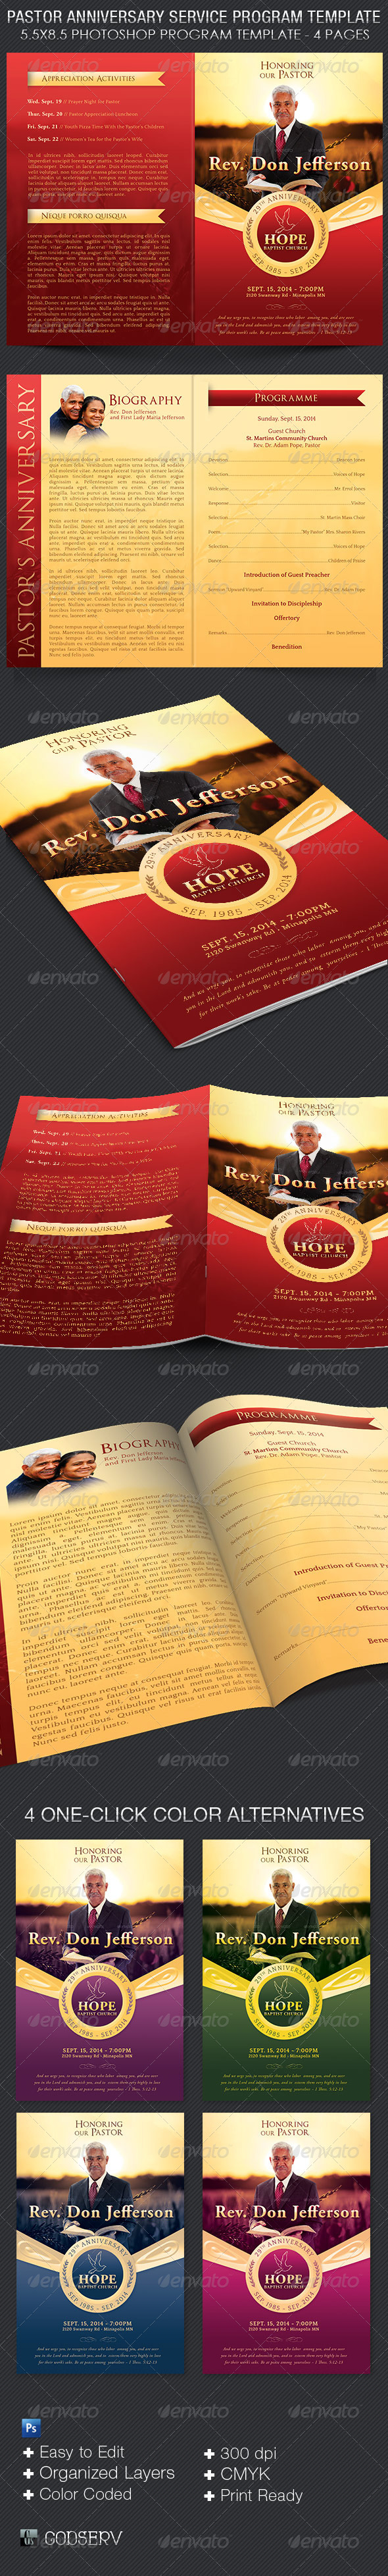 Pastor Anniversary Service Program Template - Informational Brochures